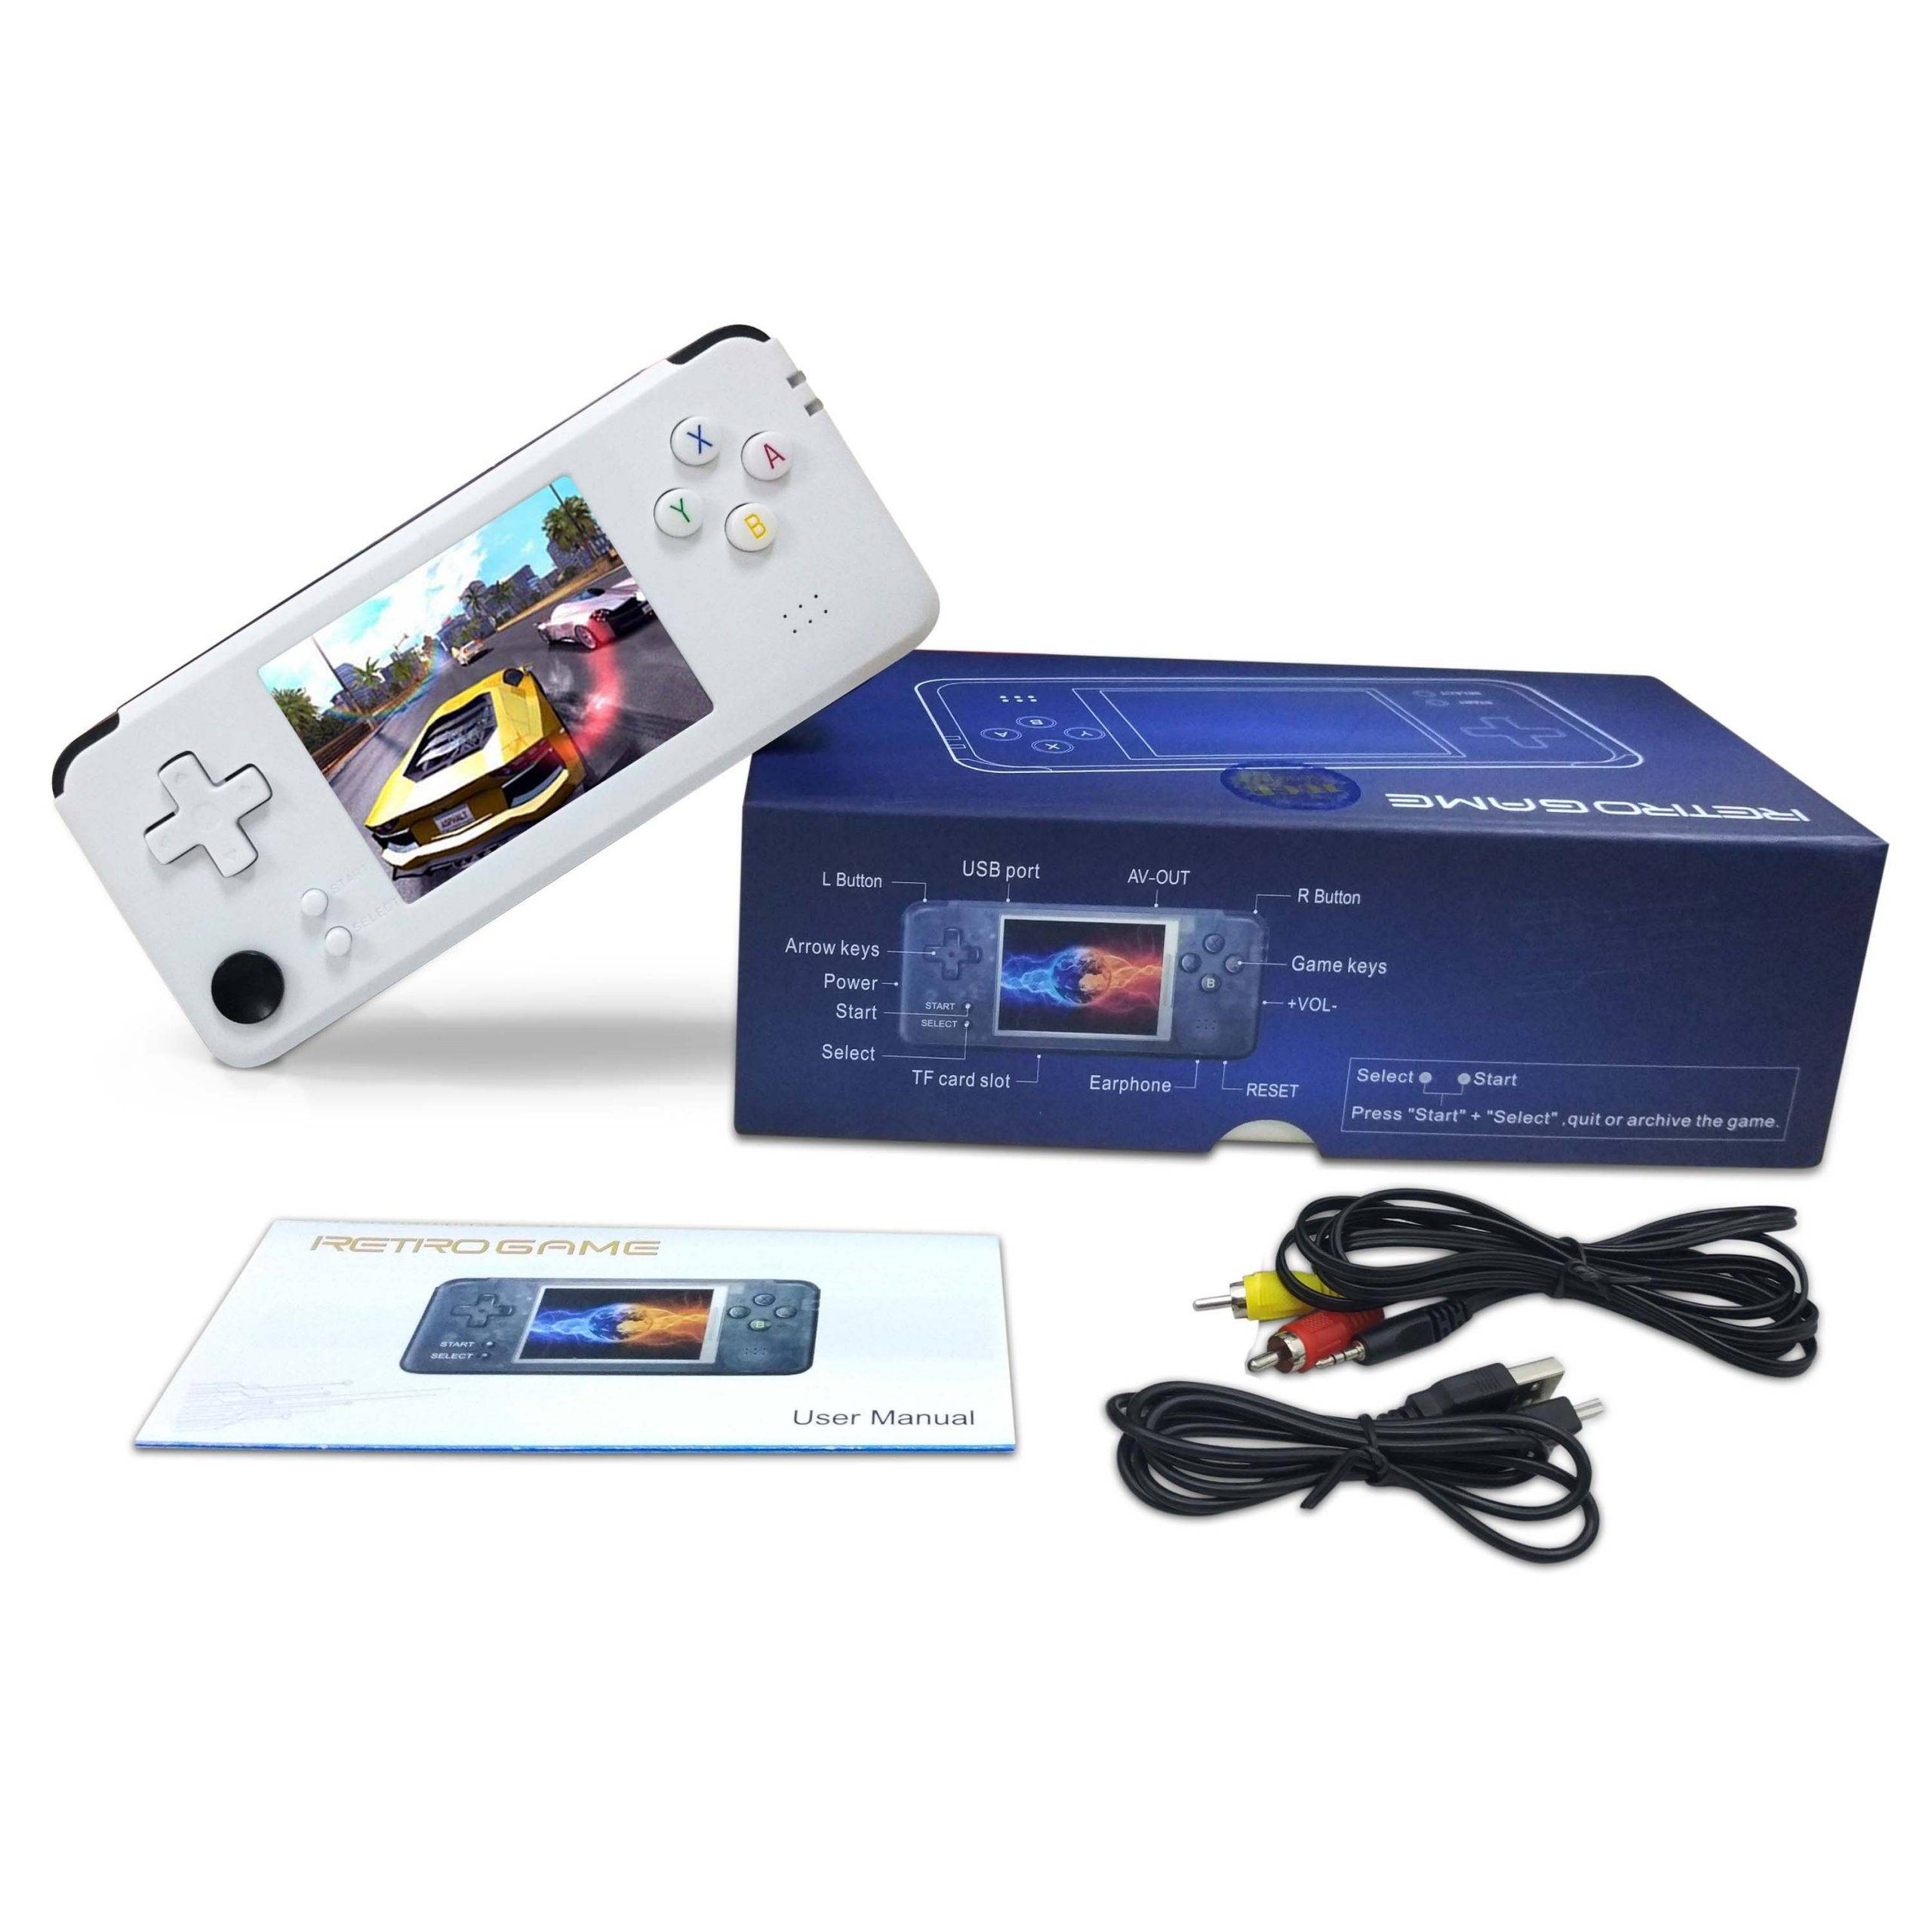 DroiX RS-97 Plus V2 Open Dingux Retro Gaming Console Handheld - Box Contents